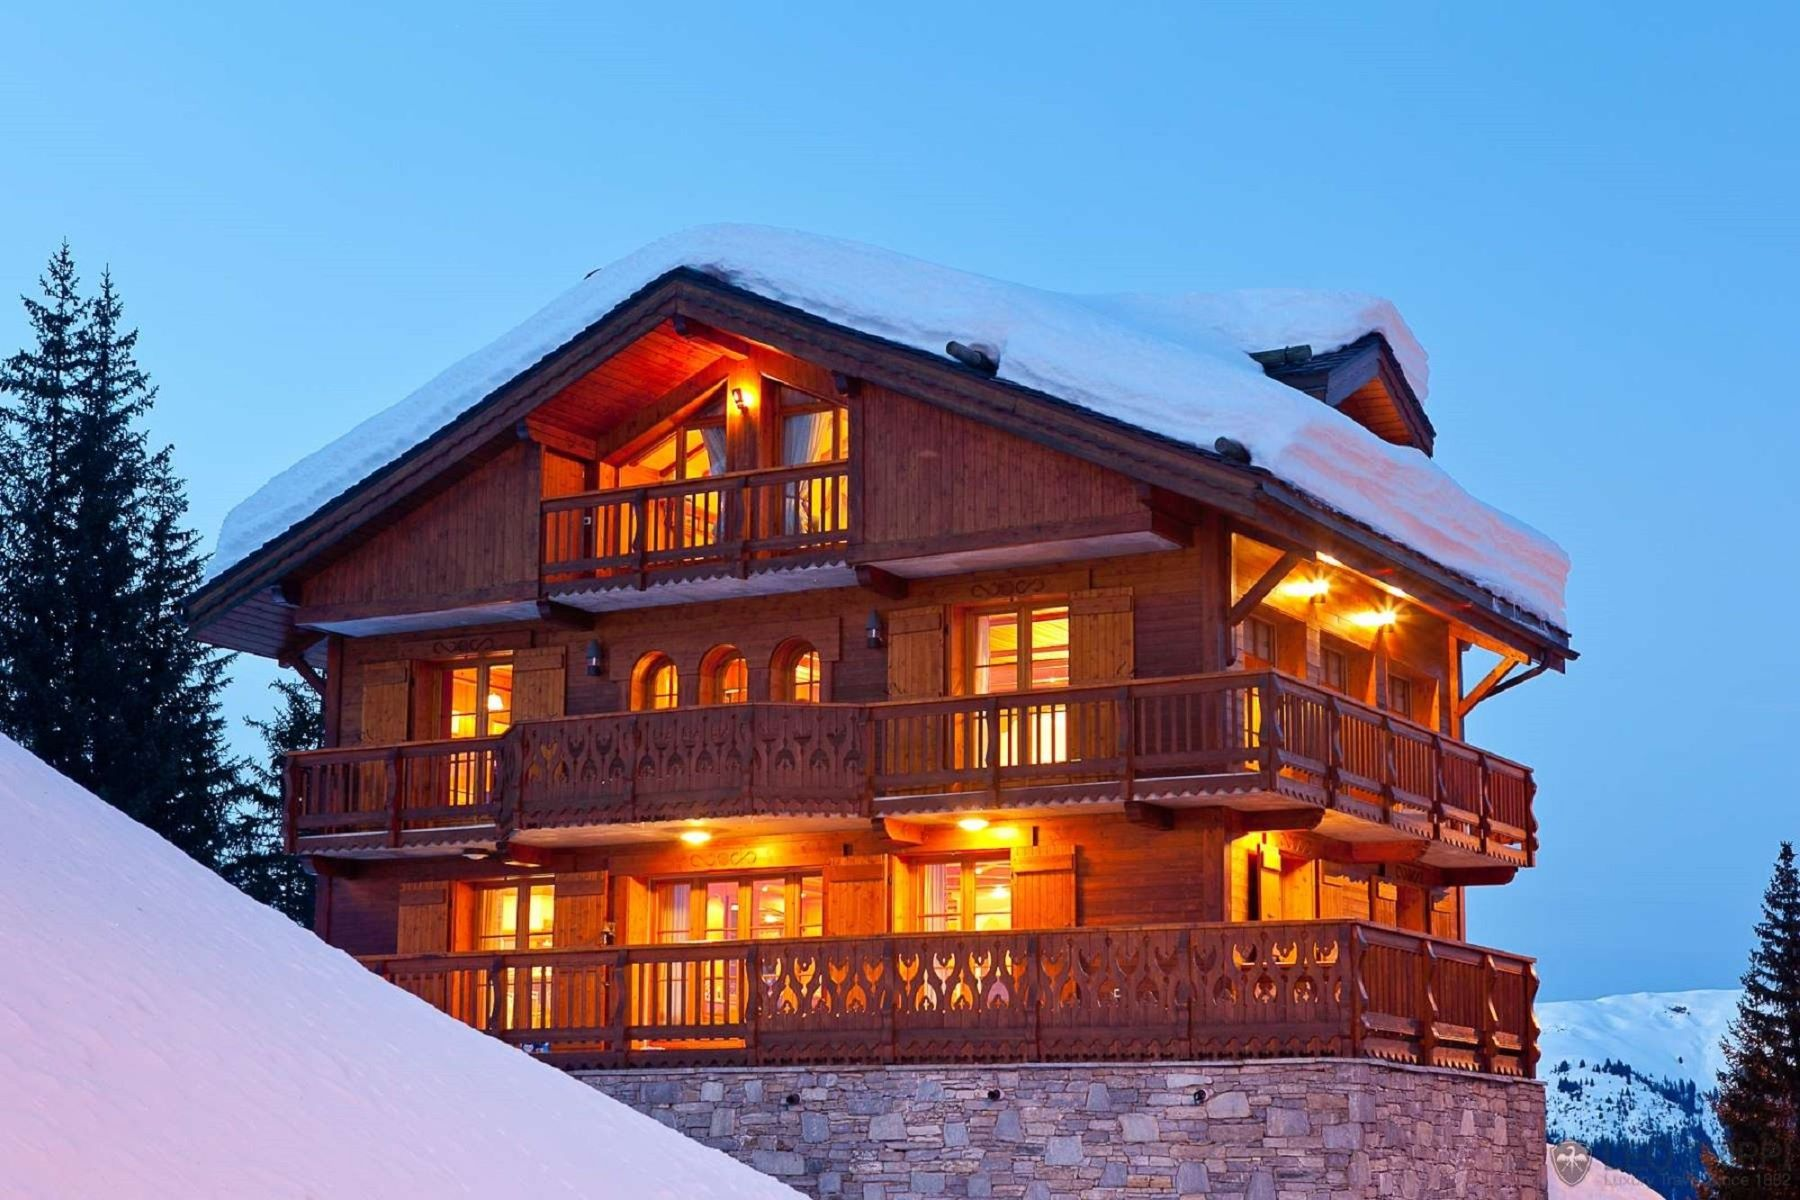 Casa Unifamiliar por un Alquiler en Luxury Chalet Appel de la Foret Courchevel Courchevel 1850, Ródano-Alpes, 73120 Francia